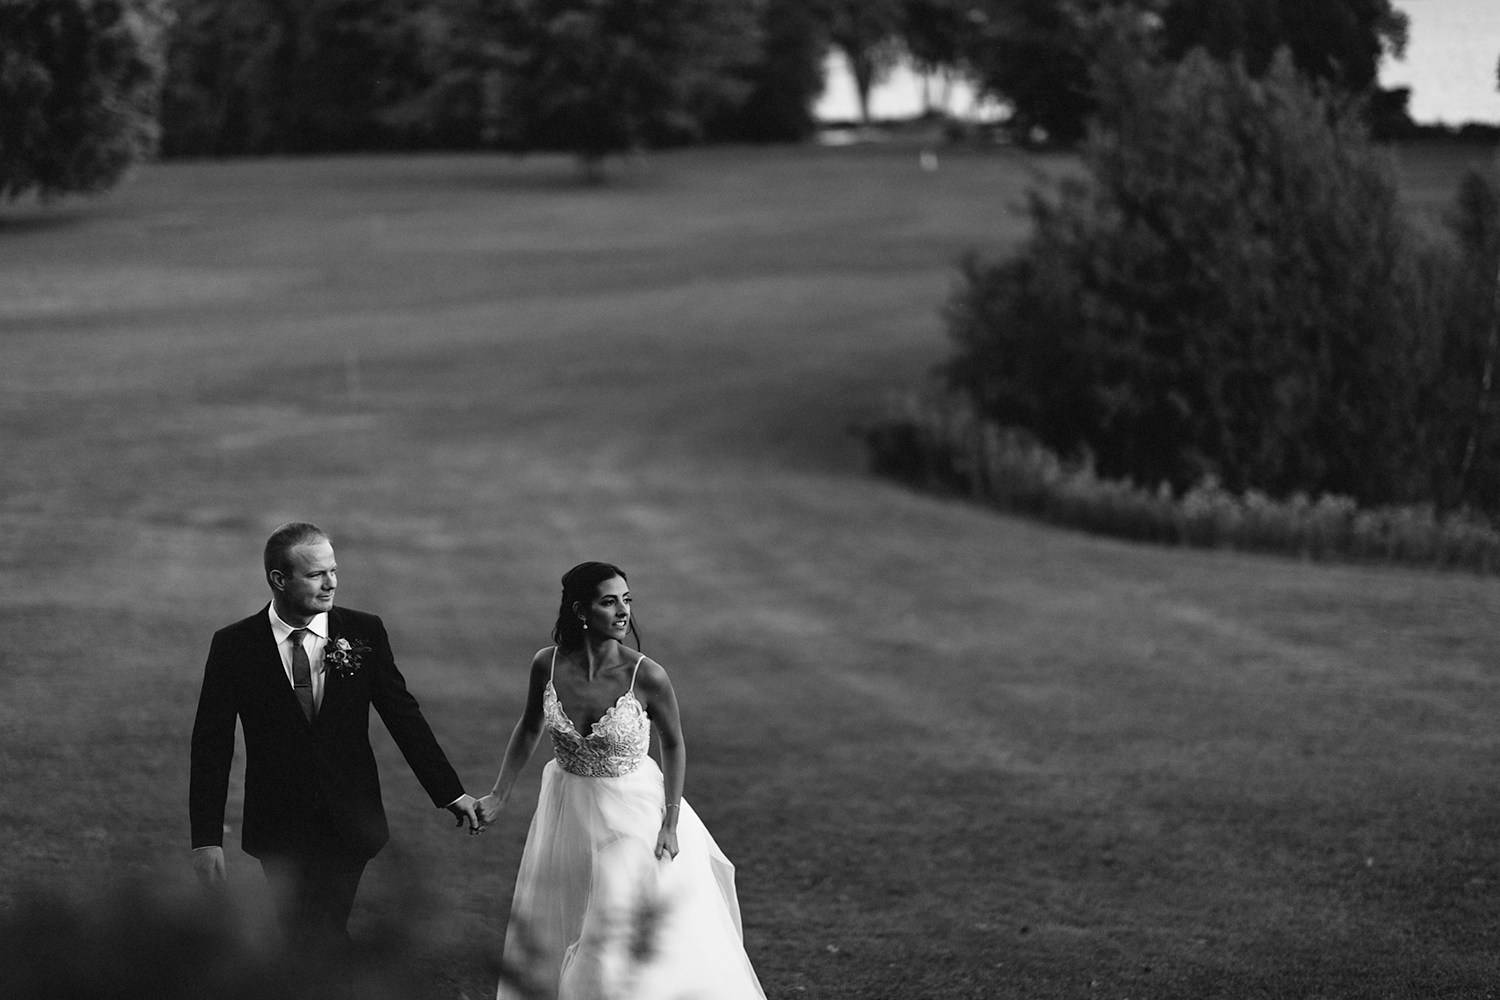 bw-couples-portrait-ideas-sunset-golden-hour-in-field-view-of-lake-pink-sky-At-Eganridge-Resort-Venue-Muskoka-Ontario-Wedding-Photography-by-Ryanne-Hollies-Photography-Toronto-Documentary-Wedding-Photographer.jpg